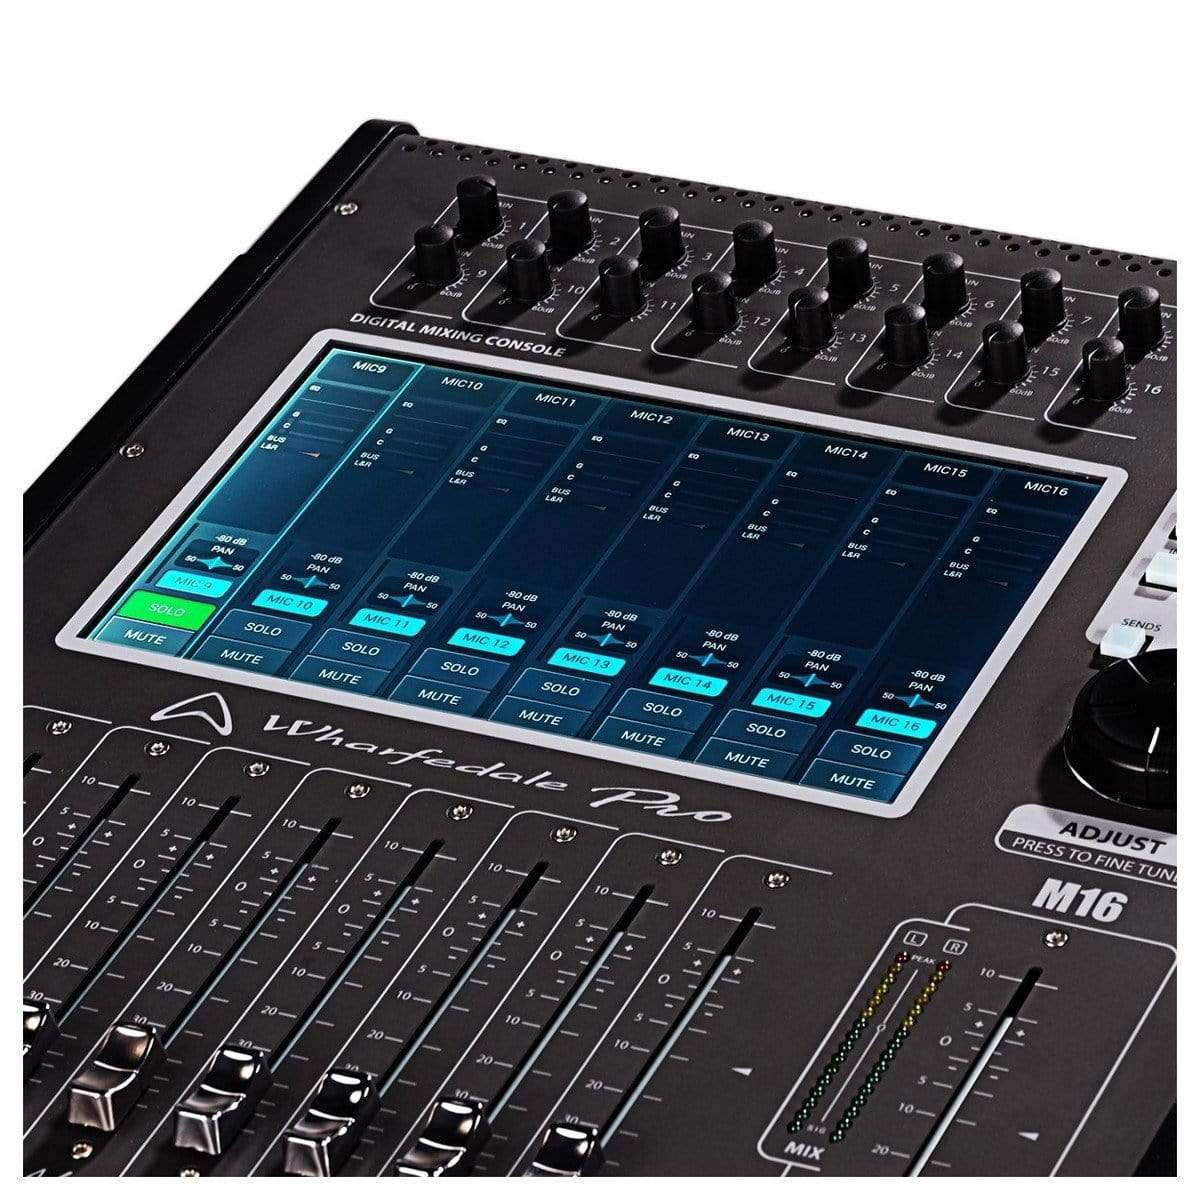 Wharfedale Pro M16 Digital Mixing Console